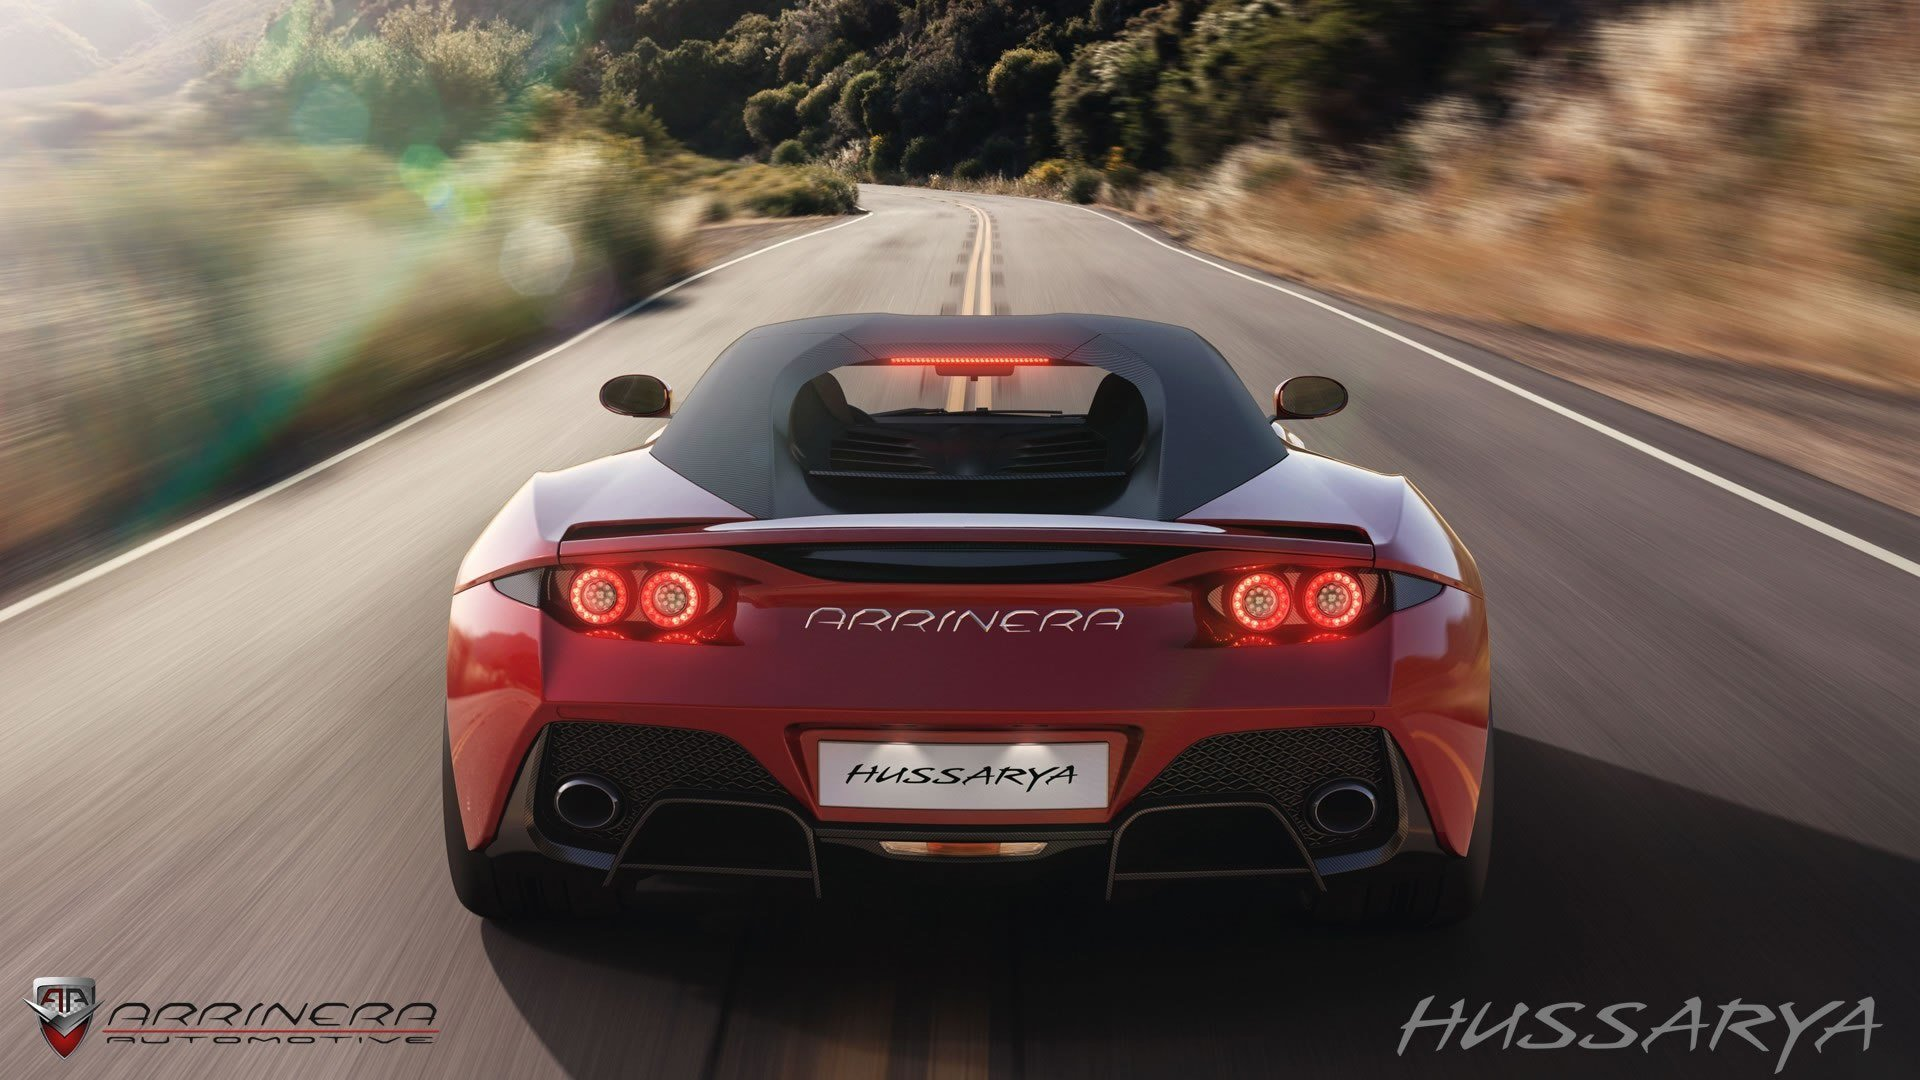 Latest 2015 Arrinera Hussarya Rear Photo Red Color Taillights Free Download